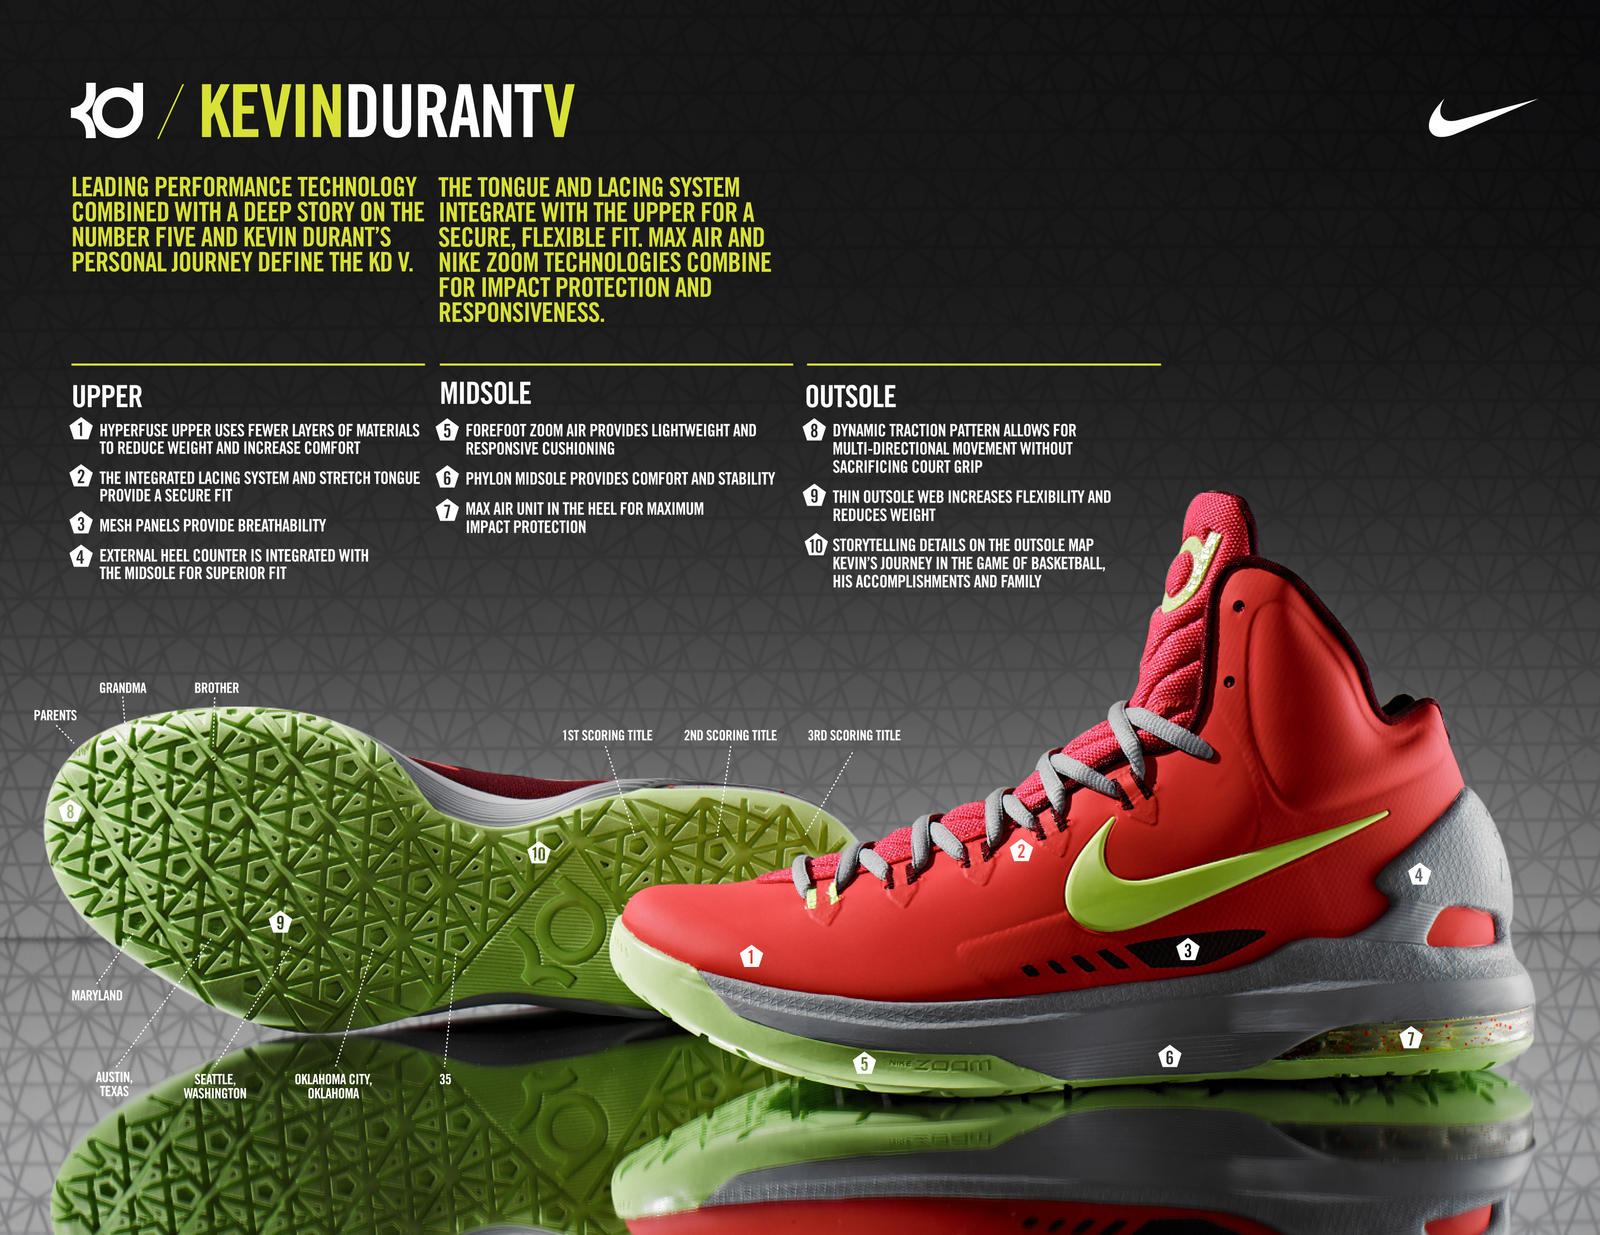 unveiling the kd v kevin durants fifth nike shoe nike news